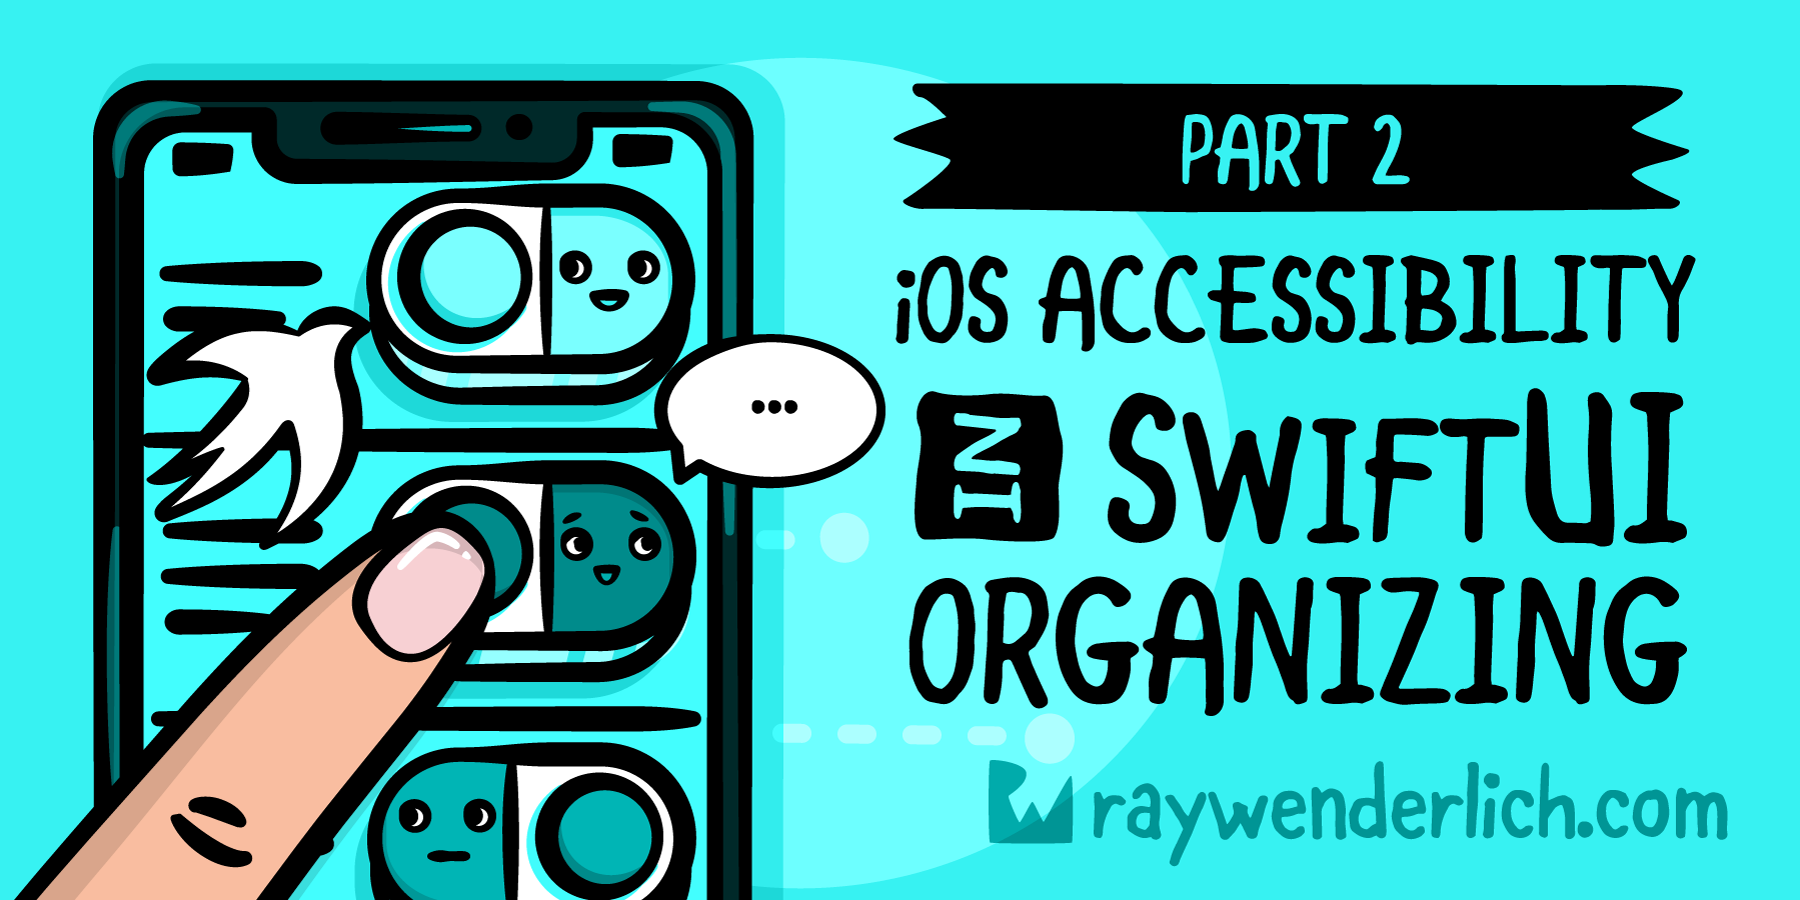 iOS Accessibility in SwiftUI Tutorial Part 2: Organizing [FREE]